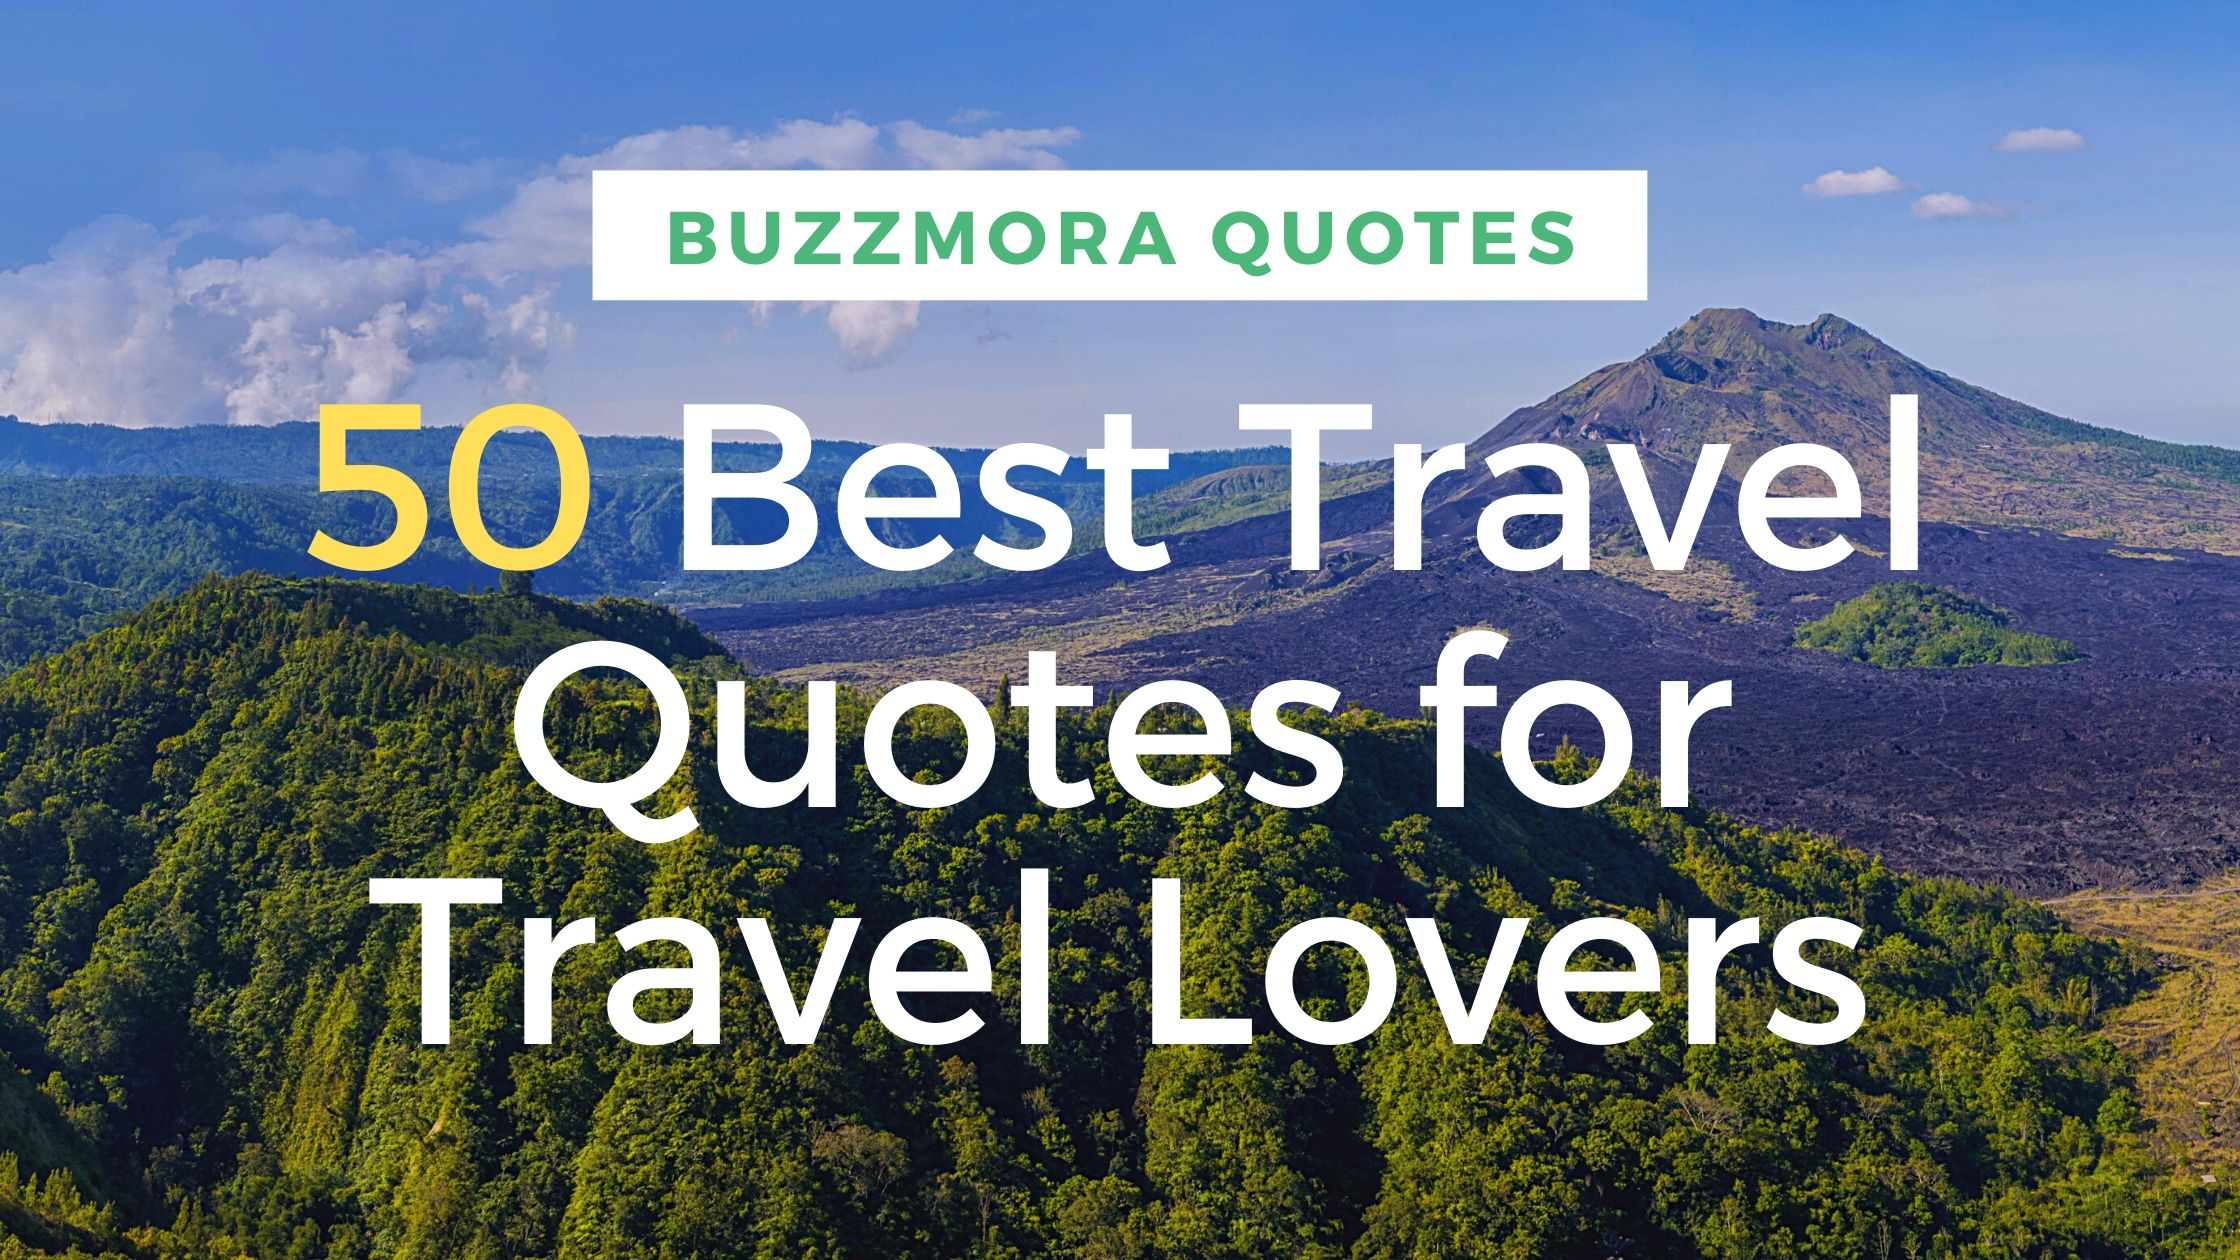 50 Best Travel Quotes for Travel Lovers